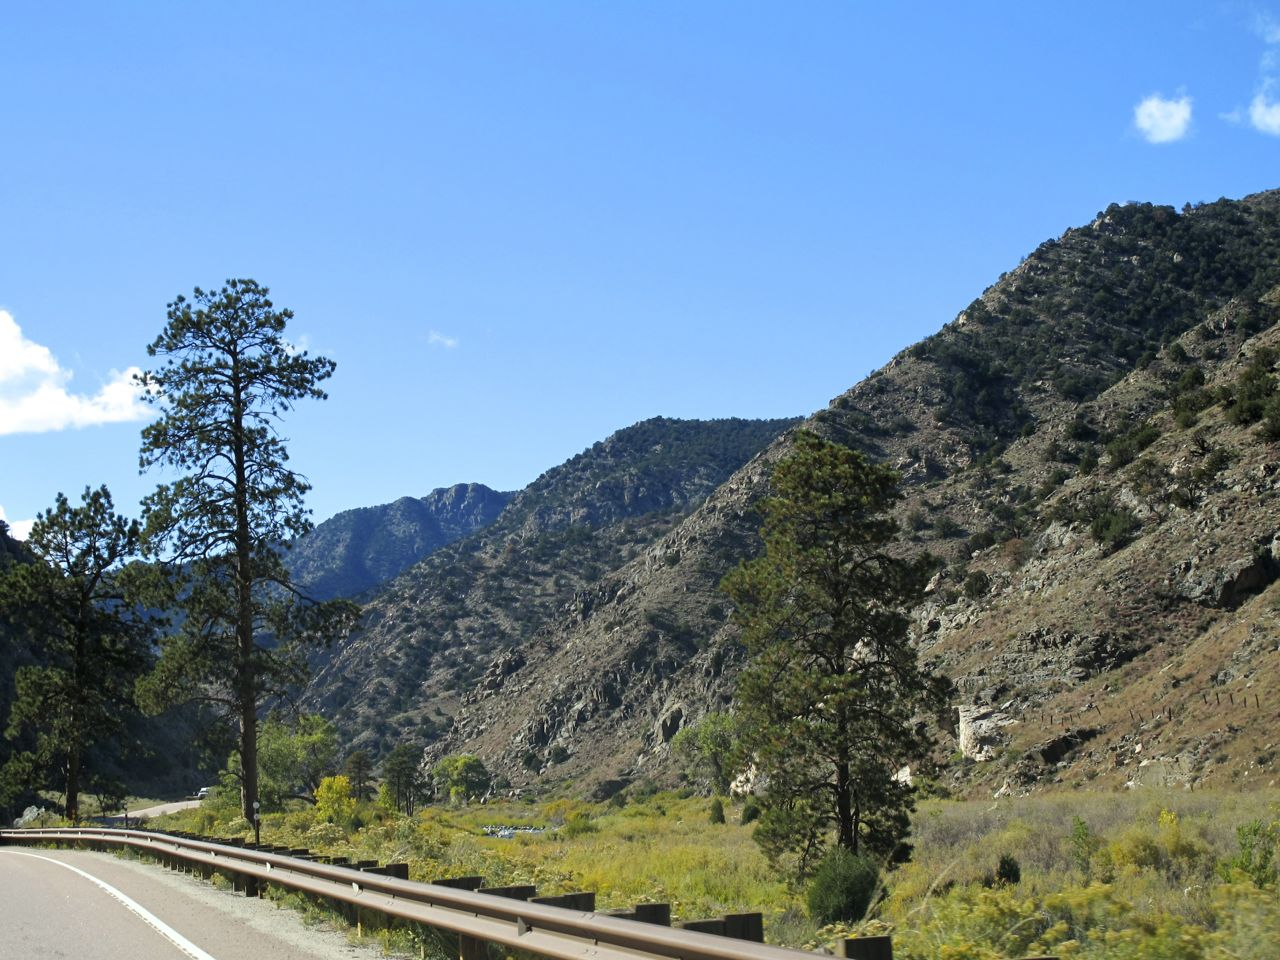 Through-the-windshield view of the Arkansas River Canyon